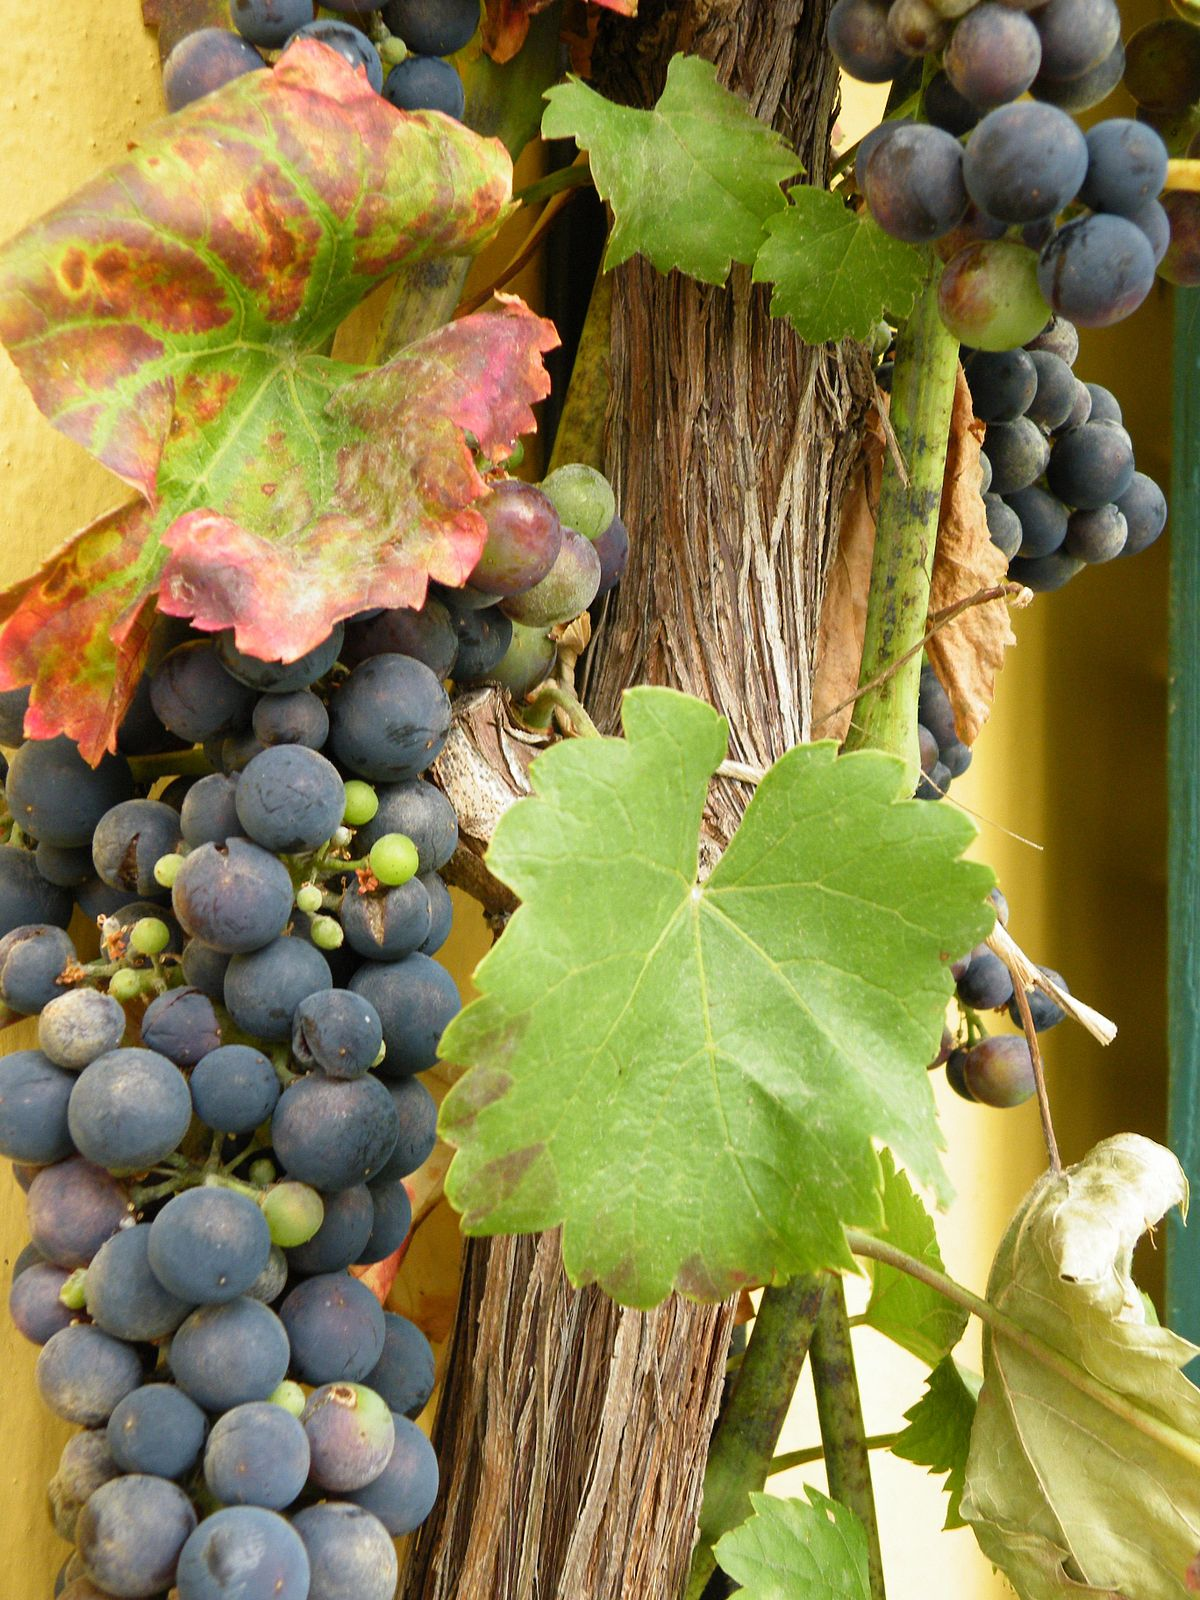 Grapes Sphinx. Description of the variety. Growing grapes